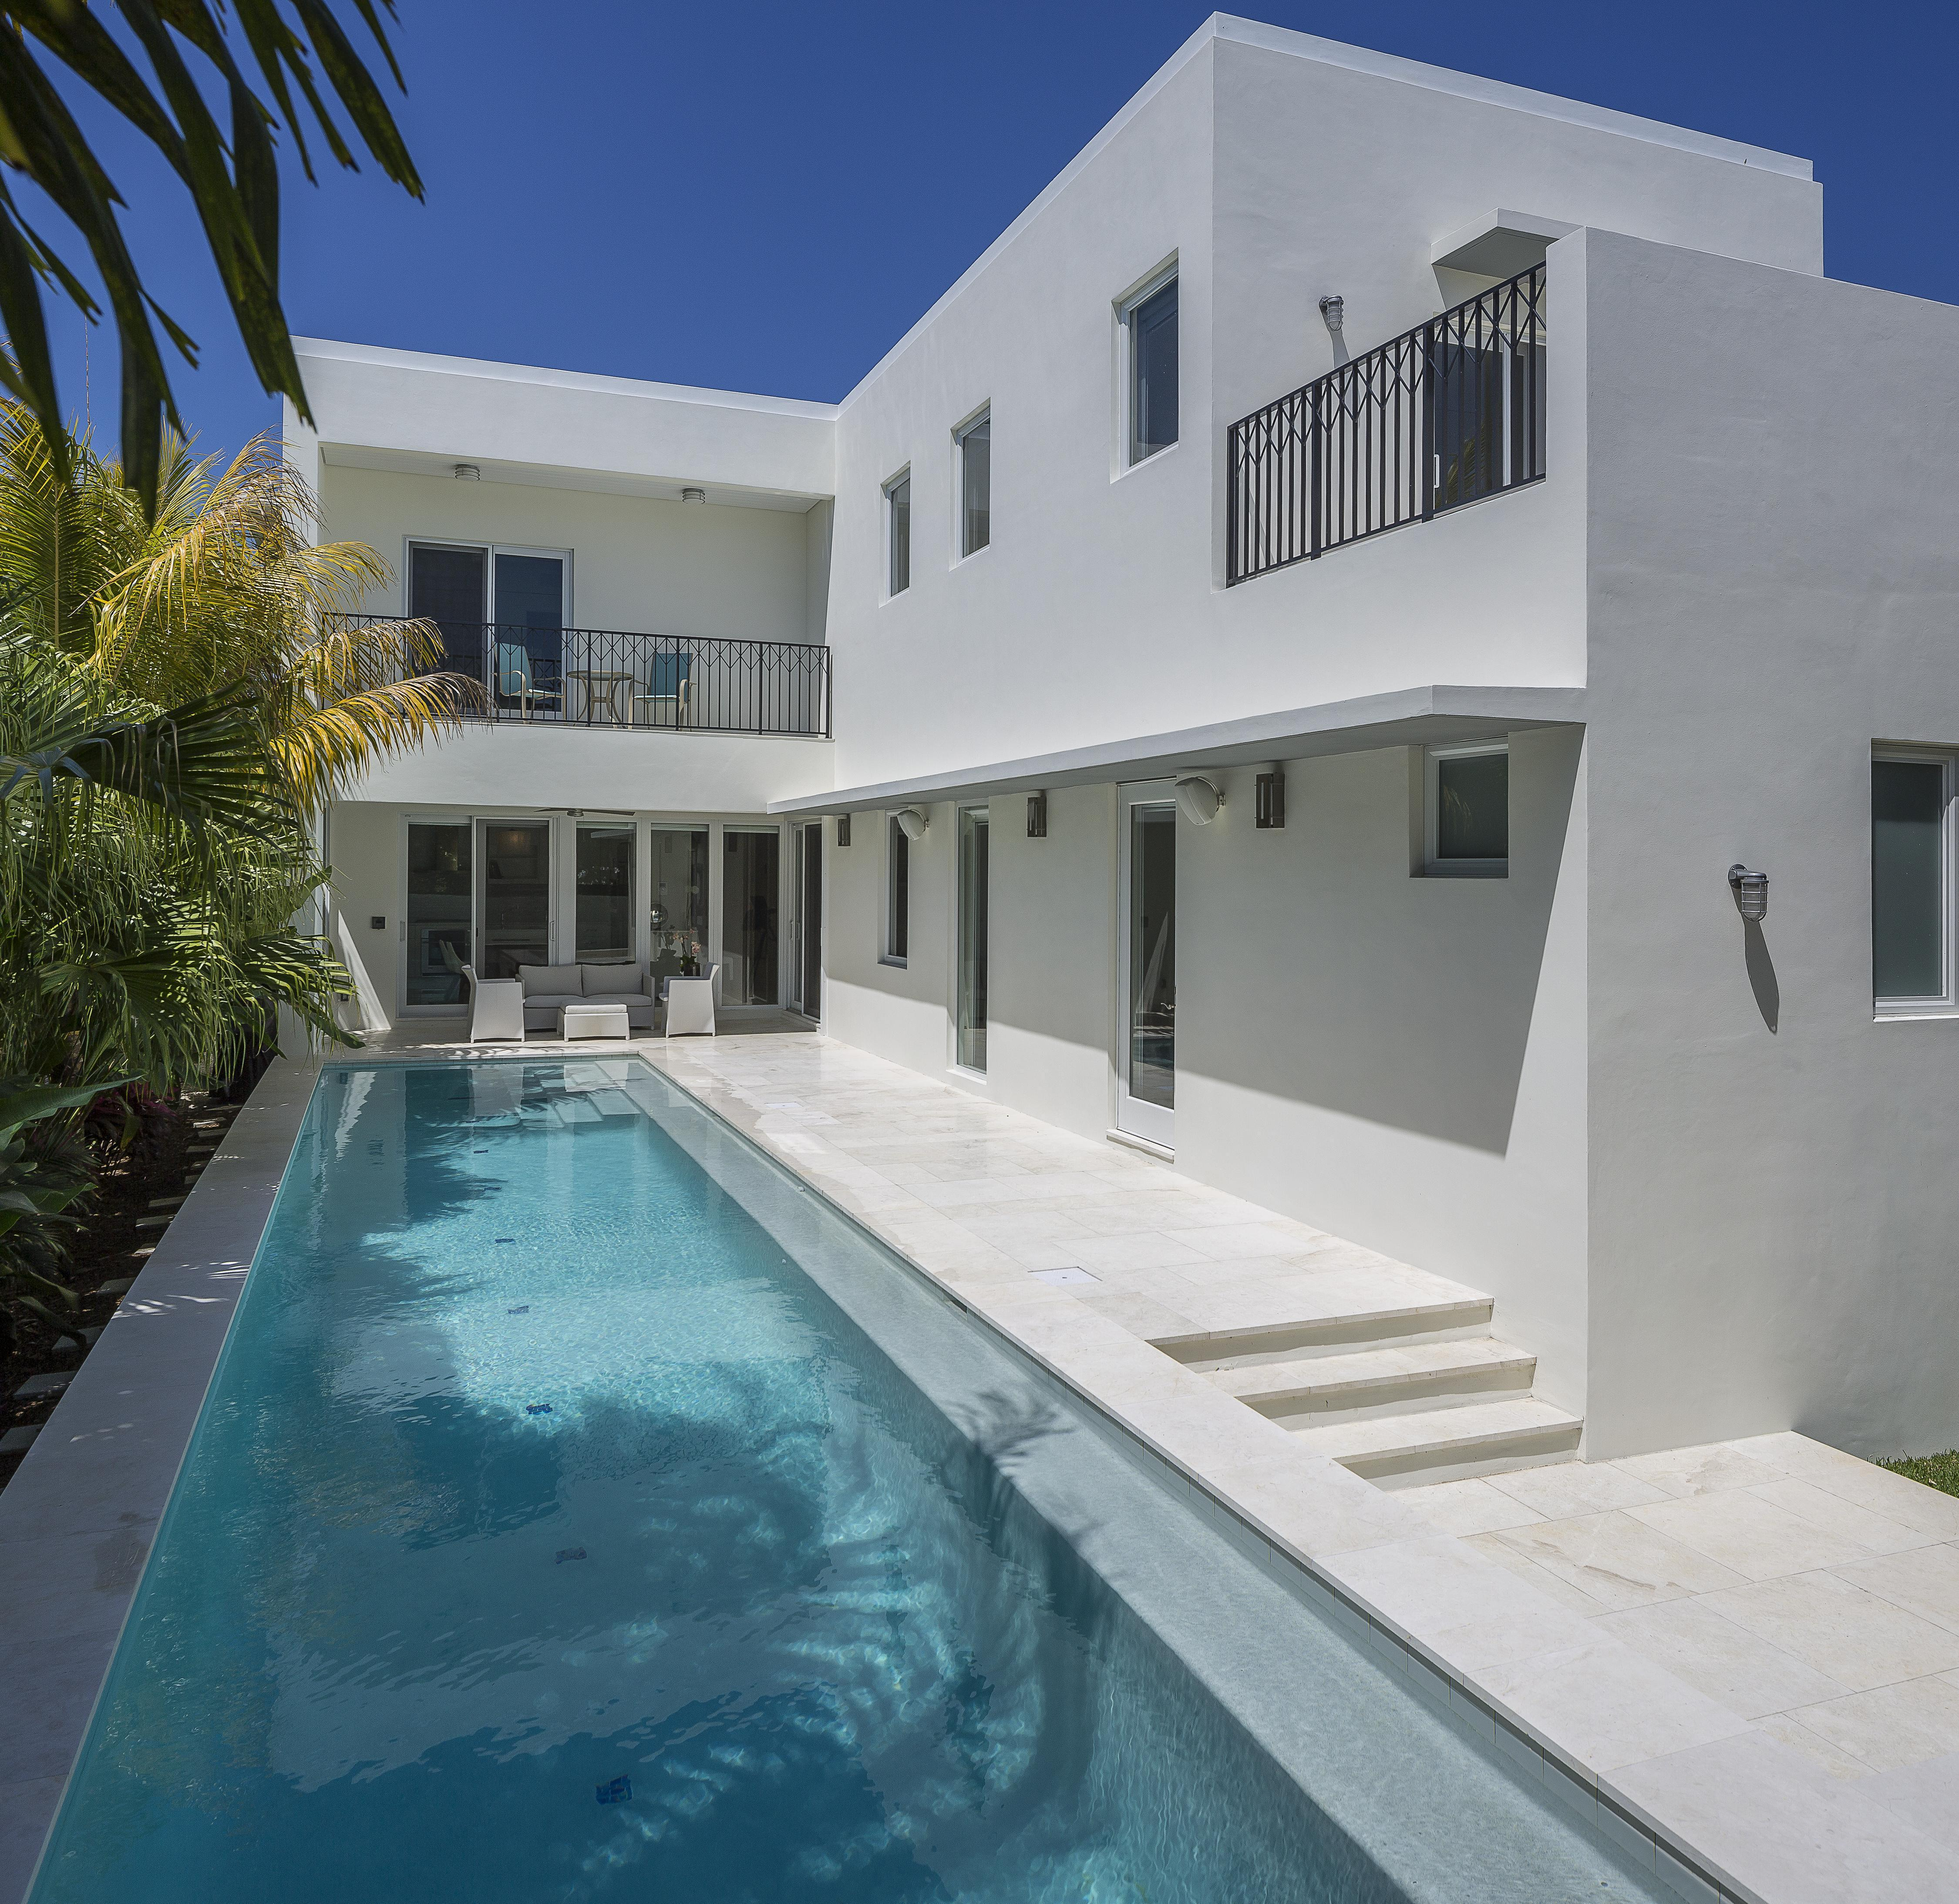 This raised view of the pool and patio highlights the extensive marble tiling and covered seating area below second floor balcony.